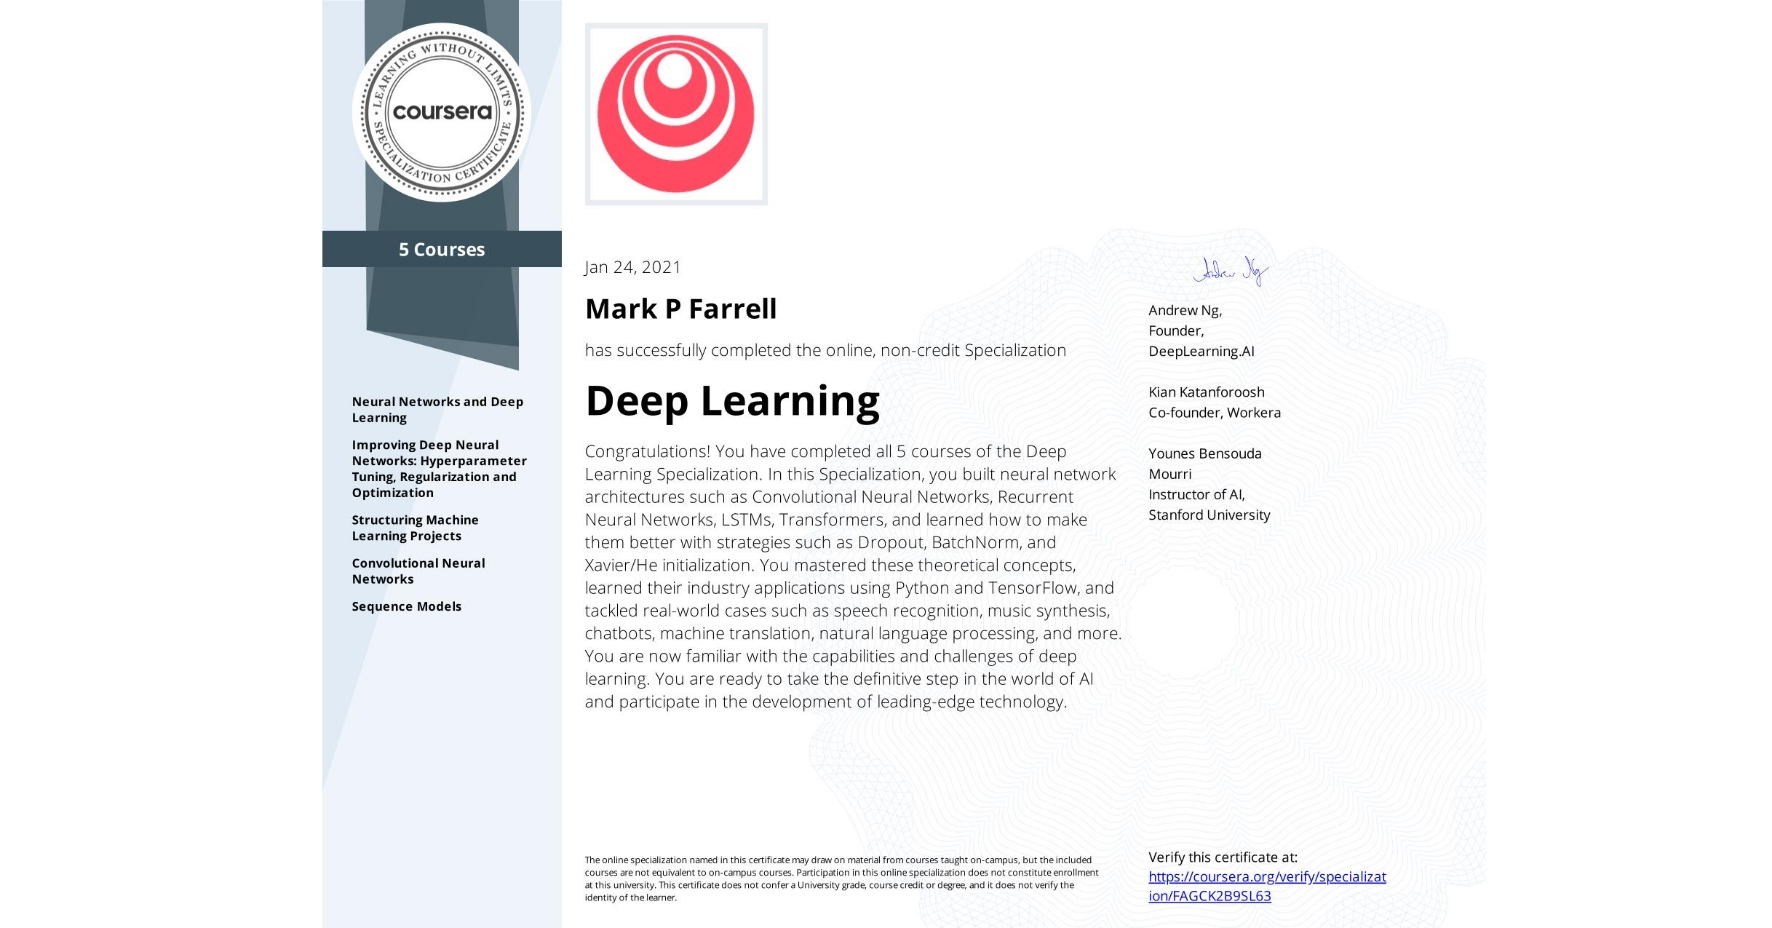 View certificate for Mark P Farrell, Deep Learning, offered through Coursera. Congratulations! You have completed all five courses of the Deep Learning Specialization.  In this Specialization, you built neural network architectures such as Convolutional Neural Networks, Recurrent Neural Networks, LSTMs, Transformers and learned how to make them better with strategies such as Dropout, BatchNorm, Xavier/He initialization, and more. You mastered these theoretical concepts and their application using Python and TensorFlow and also tackled real-world case studies such as autonomous driving, sign language reading, music generation, computer vision, speech recognition, and natural language processing.   You're now familiar with the capabilities, challenges, and consequences of deep learning and are ready to participate in the development of leading-edge AI technology.